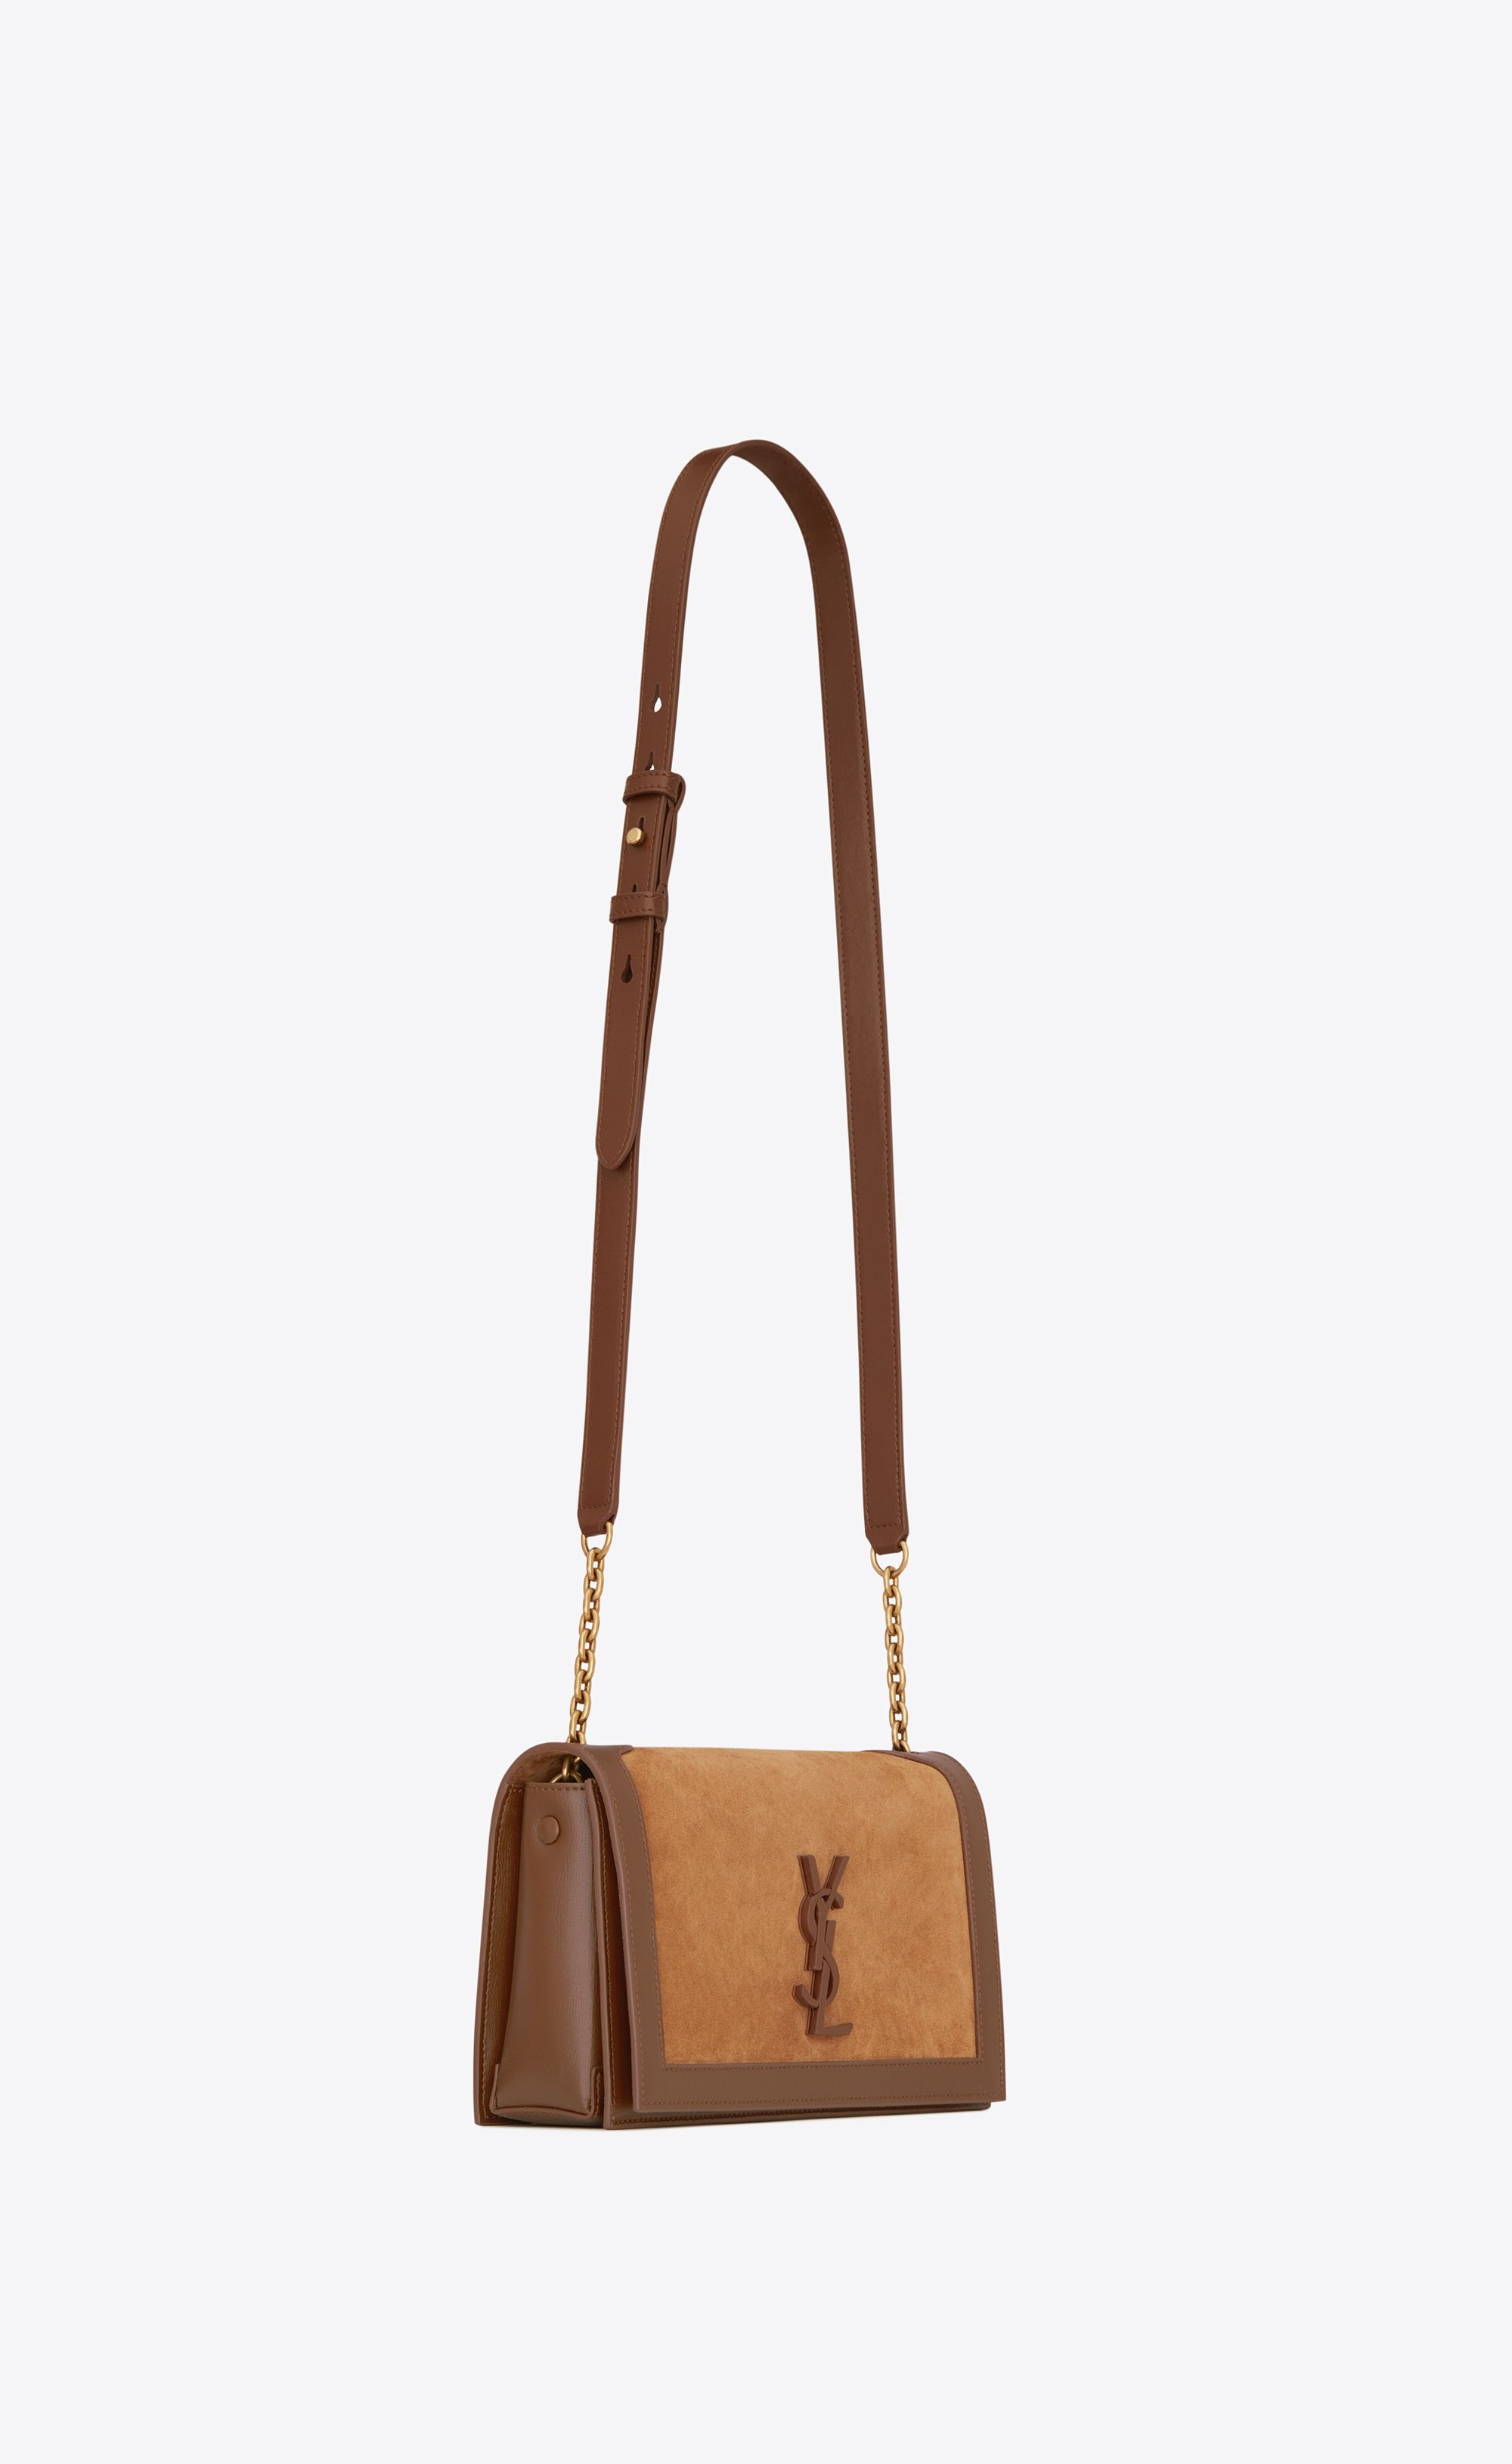 Saint Laurent - Book Bag in multi brown leather and suede ( 1 fd363bc6ff22c